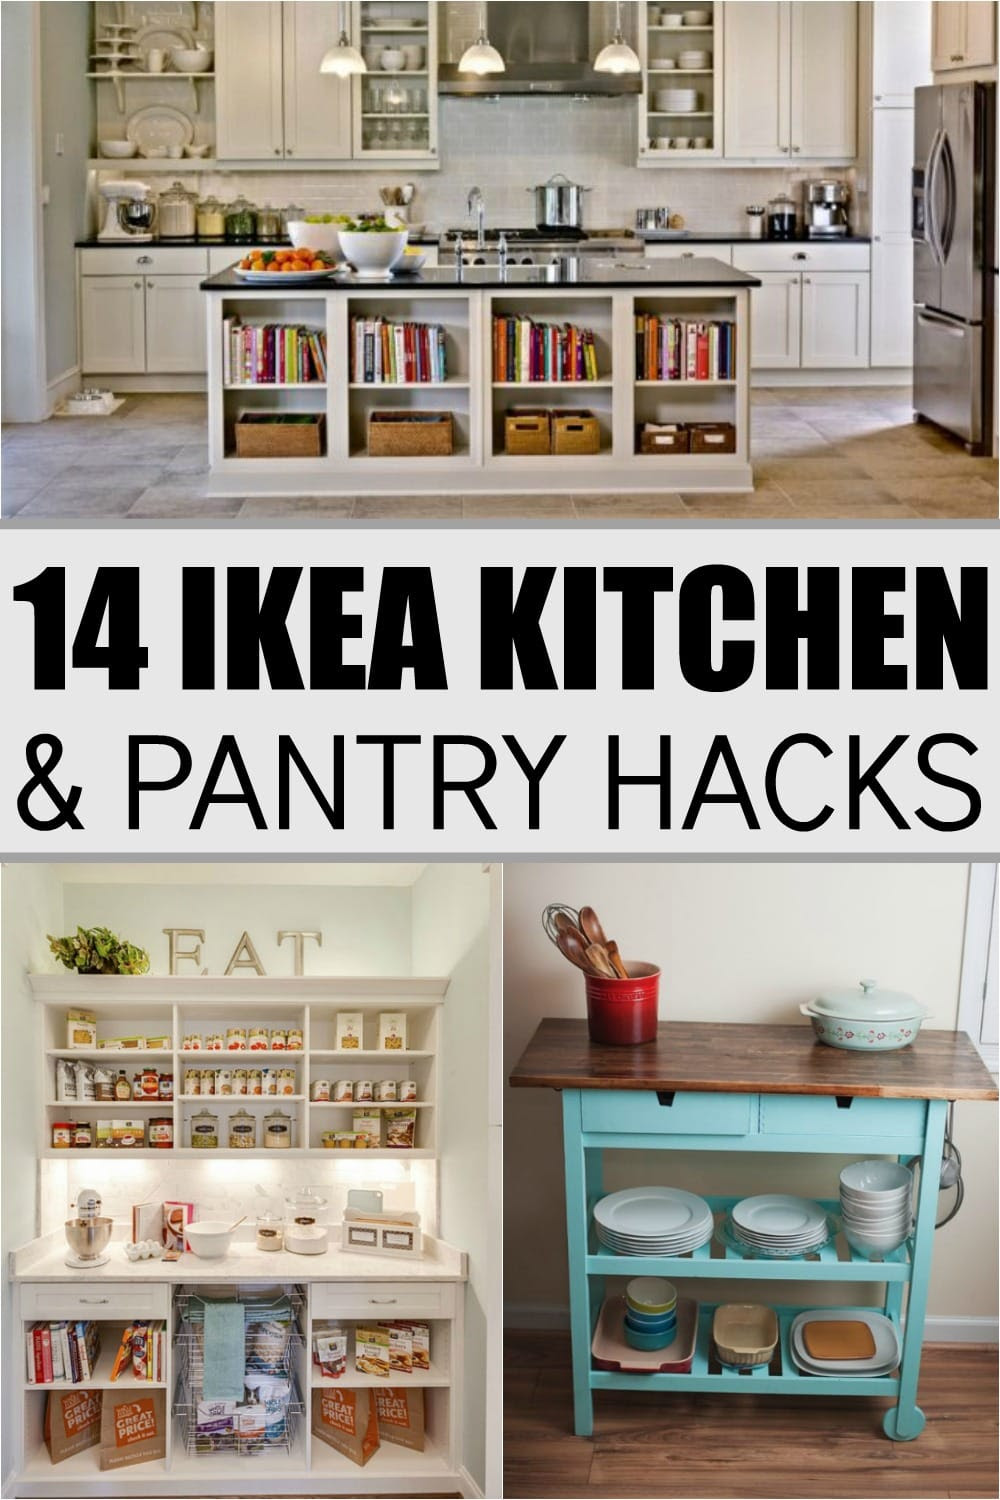 14 Ikea Hacks For Your Kitchen and Pantry - Super Foods Life